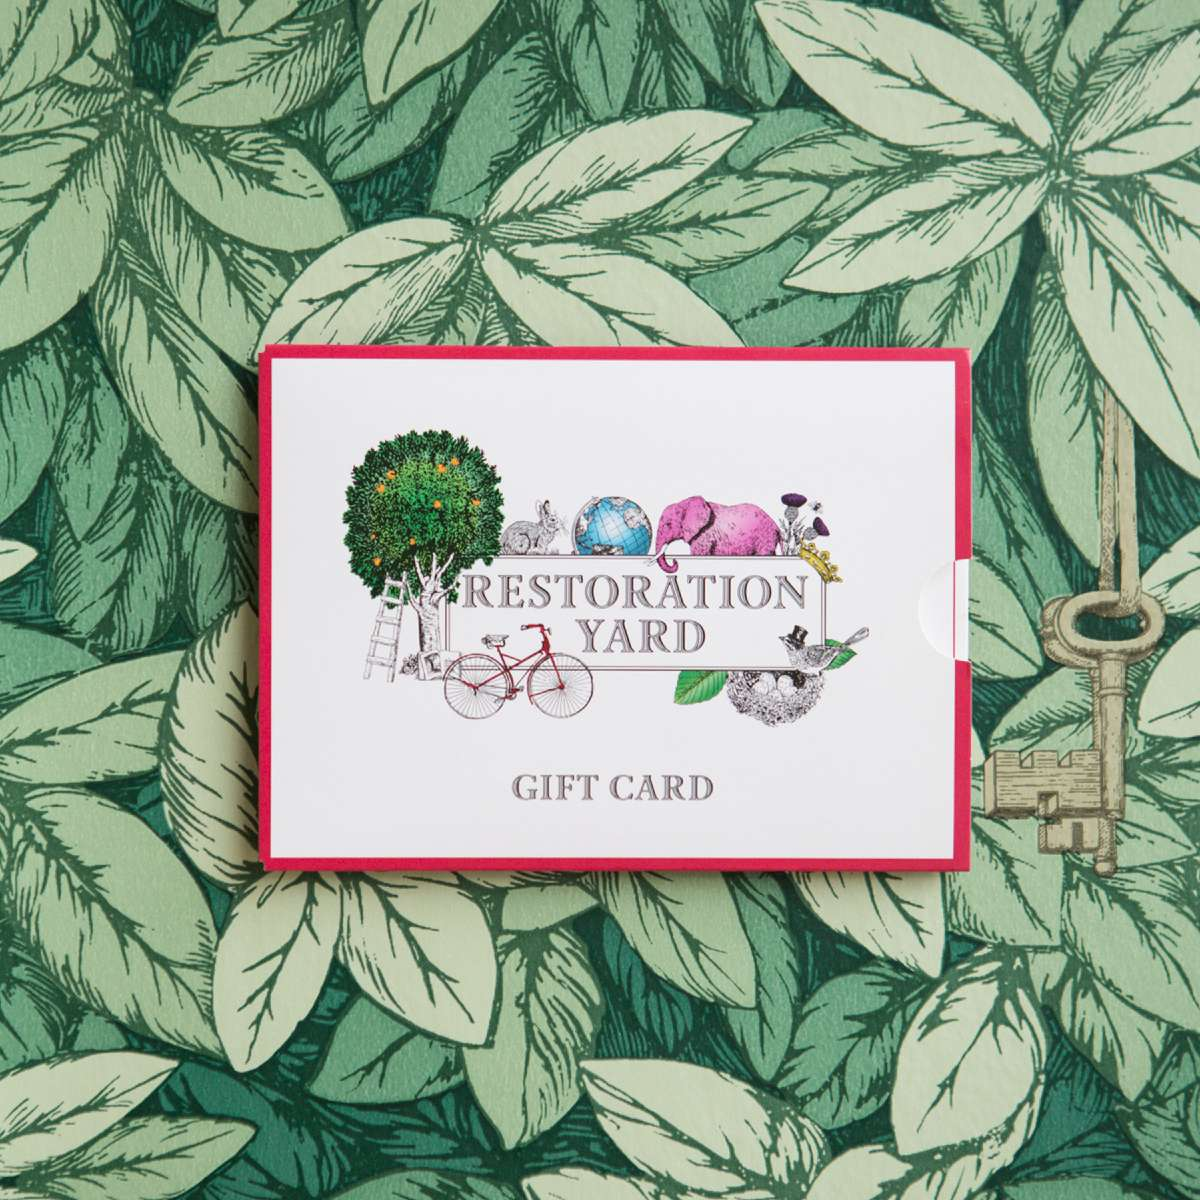 Restoration Yard Gift Cards From £10